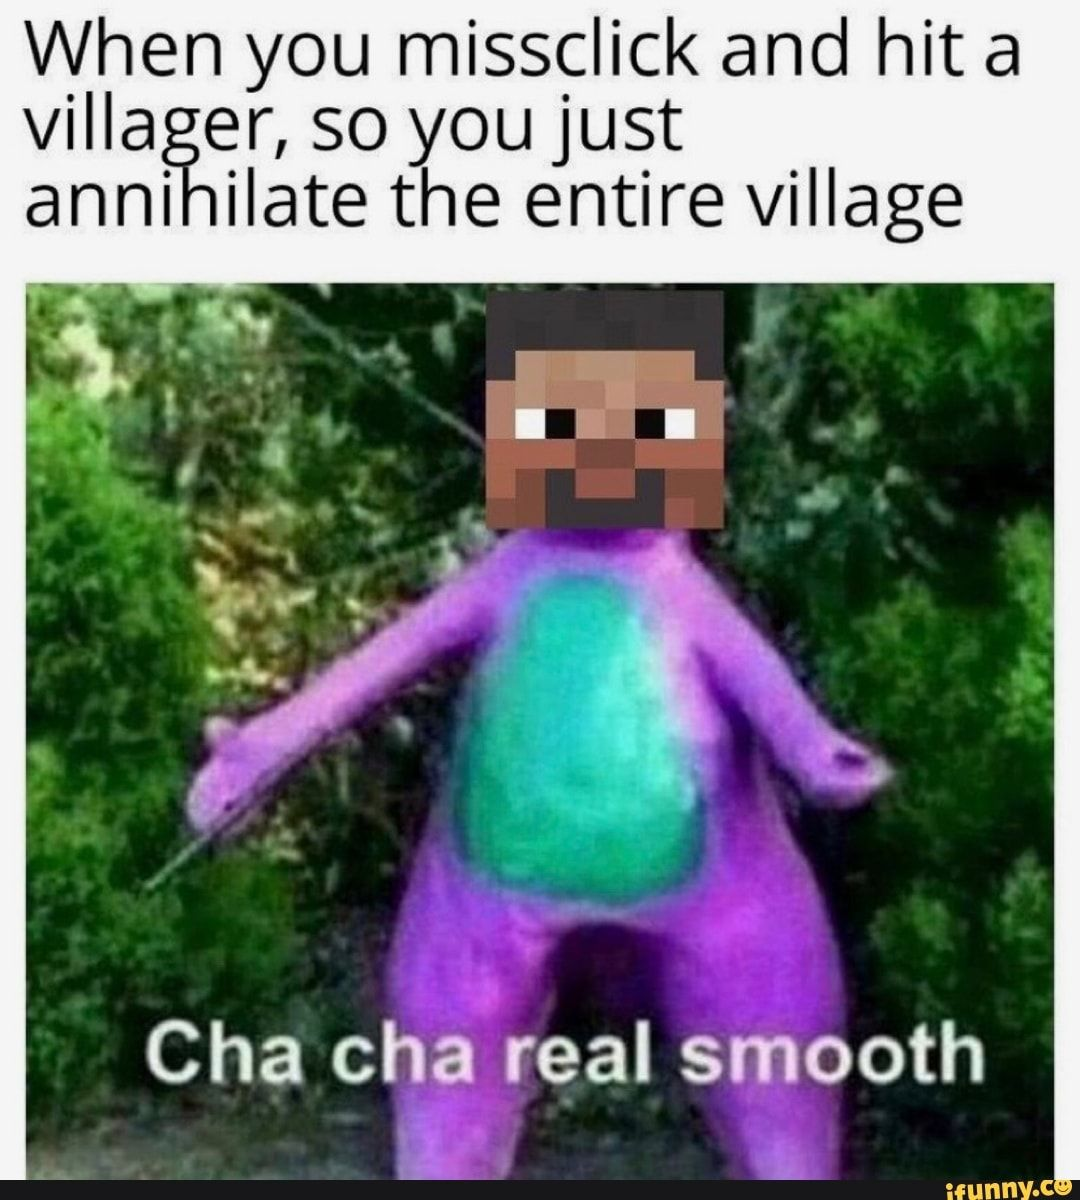 When You Missclick And Hit A Villa Er So Youjust Anni Ilate The Entire Village Ifunny In 2020 Minecraft Memes Funny Gaming Memes Minecraft Funny